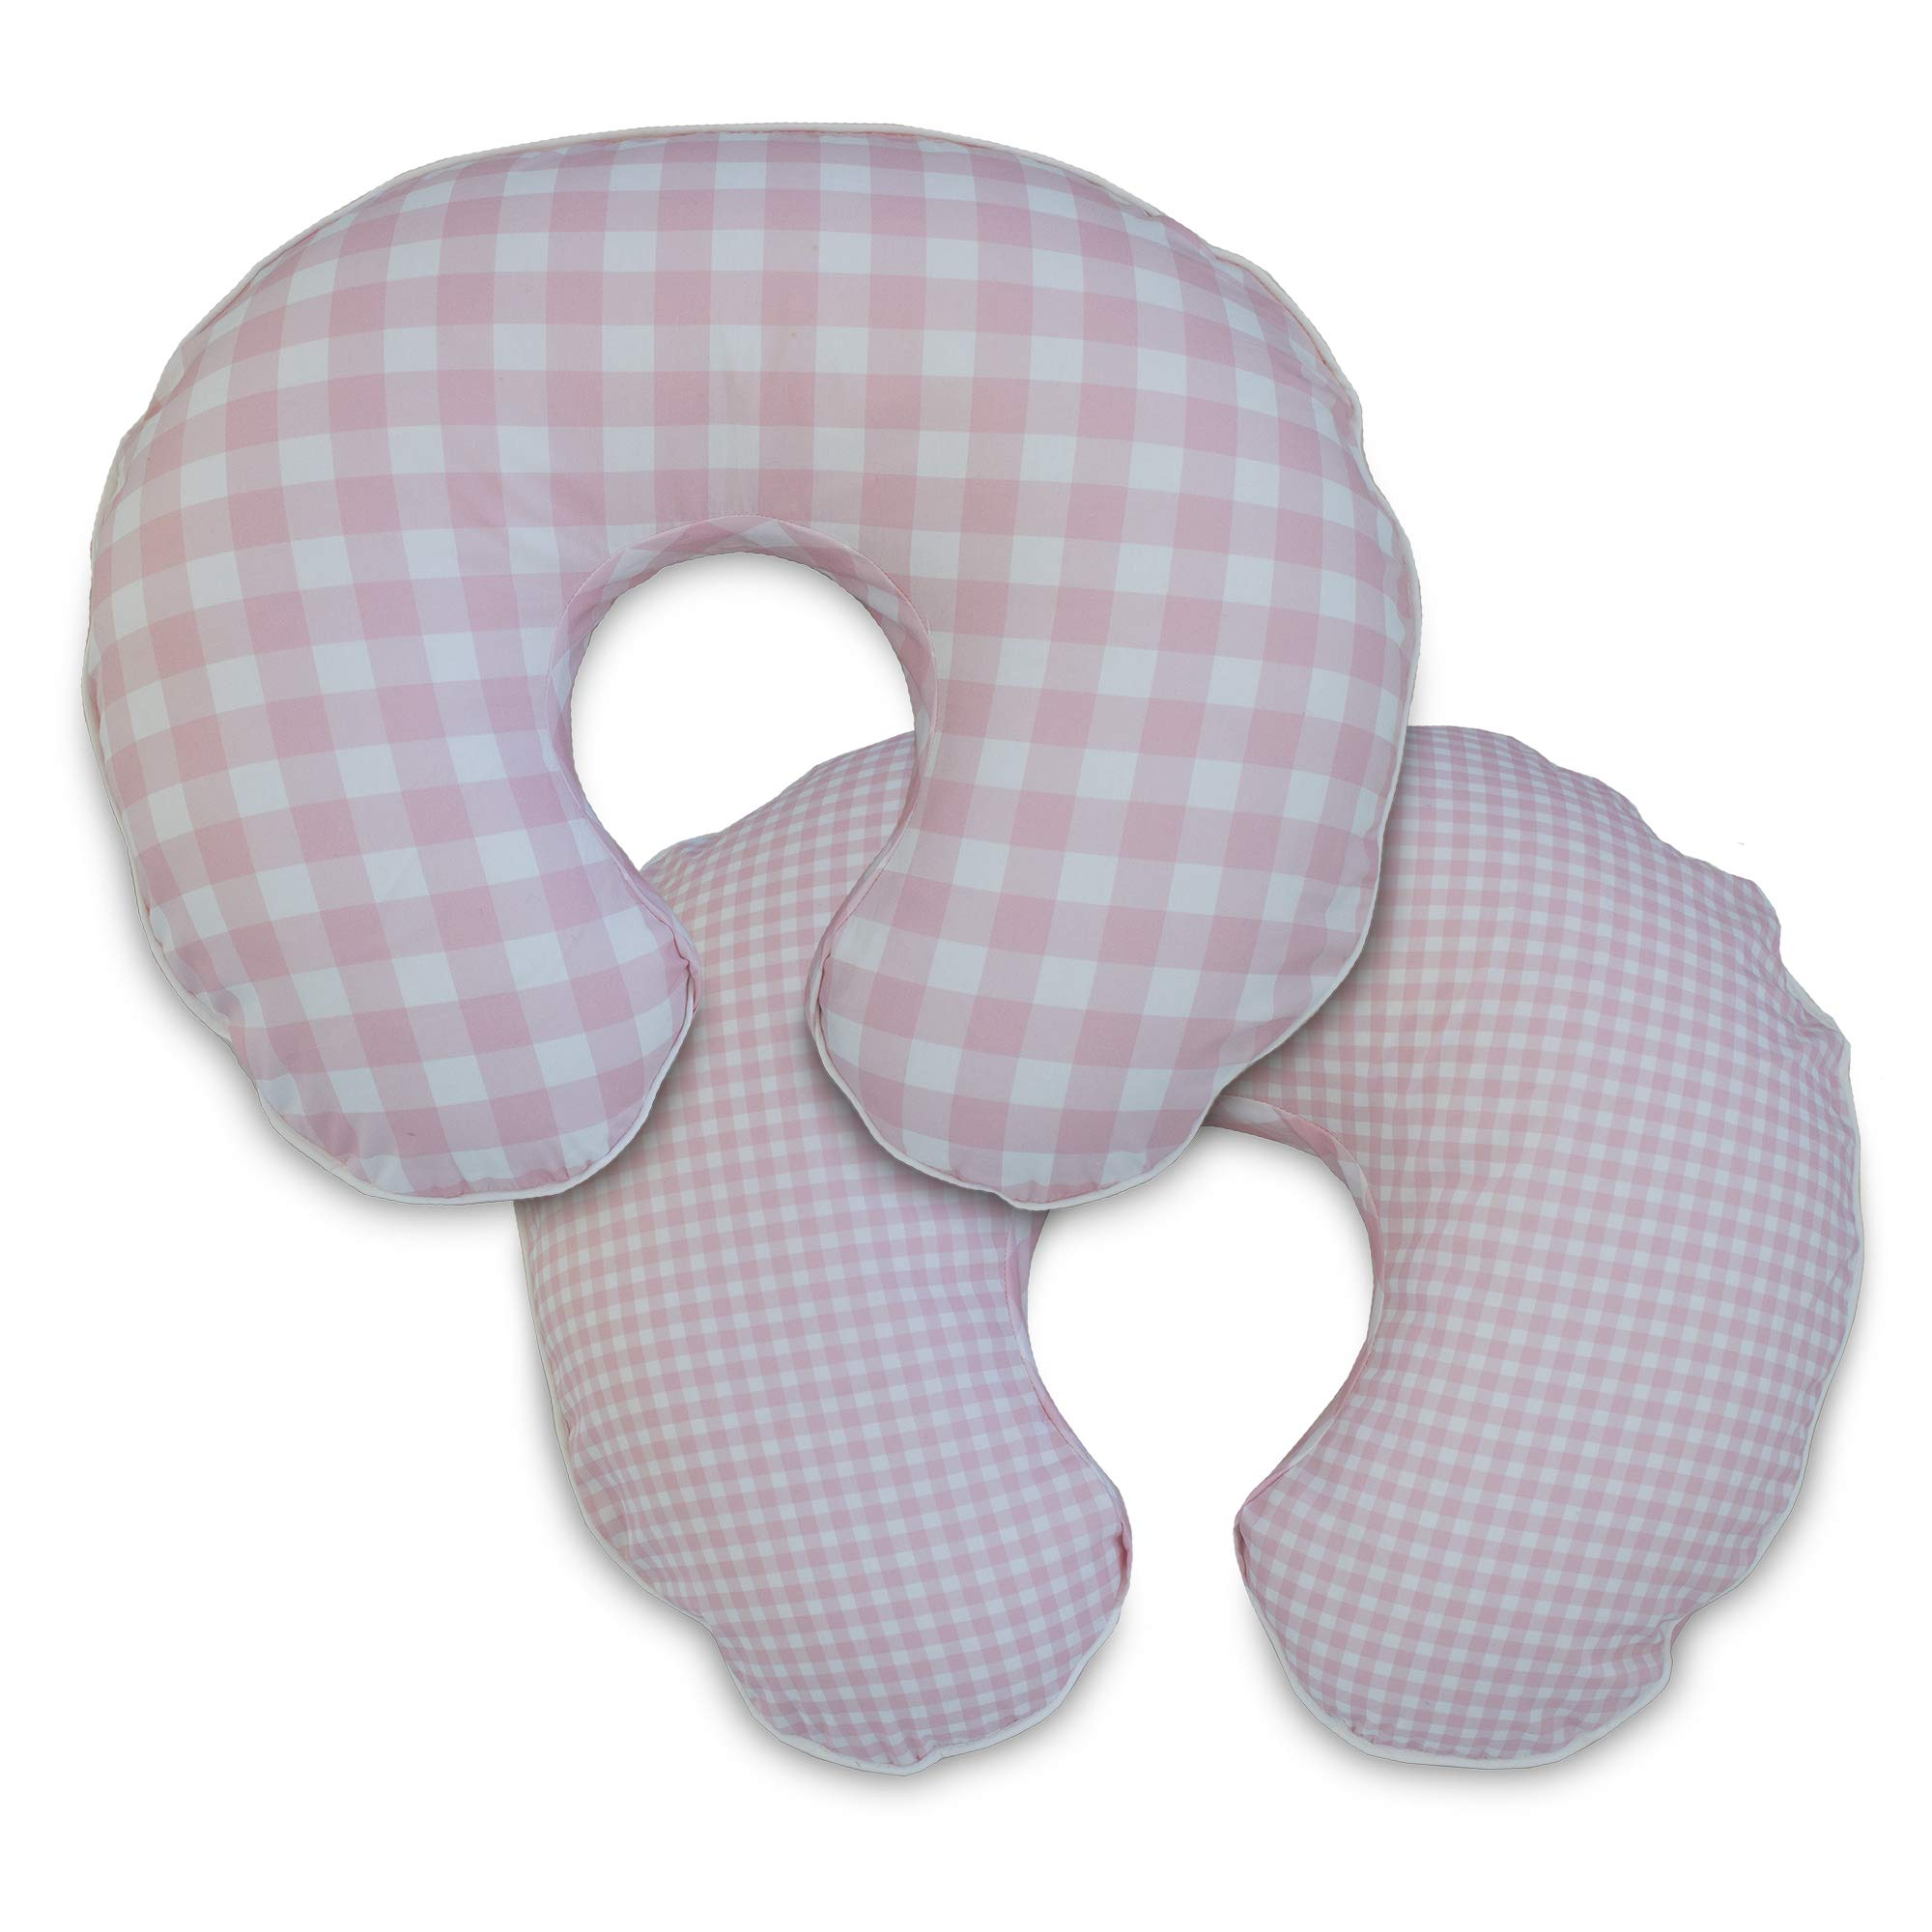 Boppy Premium Pillow Cover, Pink White Jumbo Plaid, Ultra-soft Microfiber Fabric in a fashionable two-sided design, Fits All Boppy Nursing Pillows and Positioners by Boppy